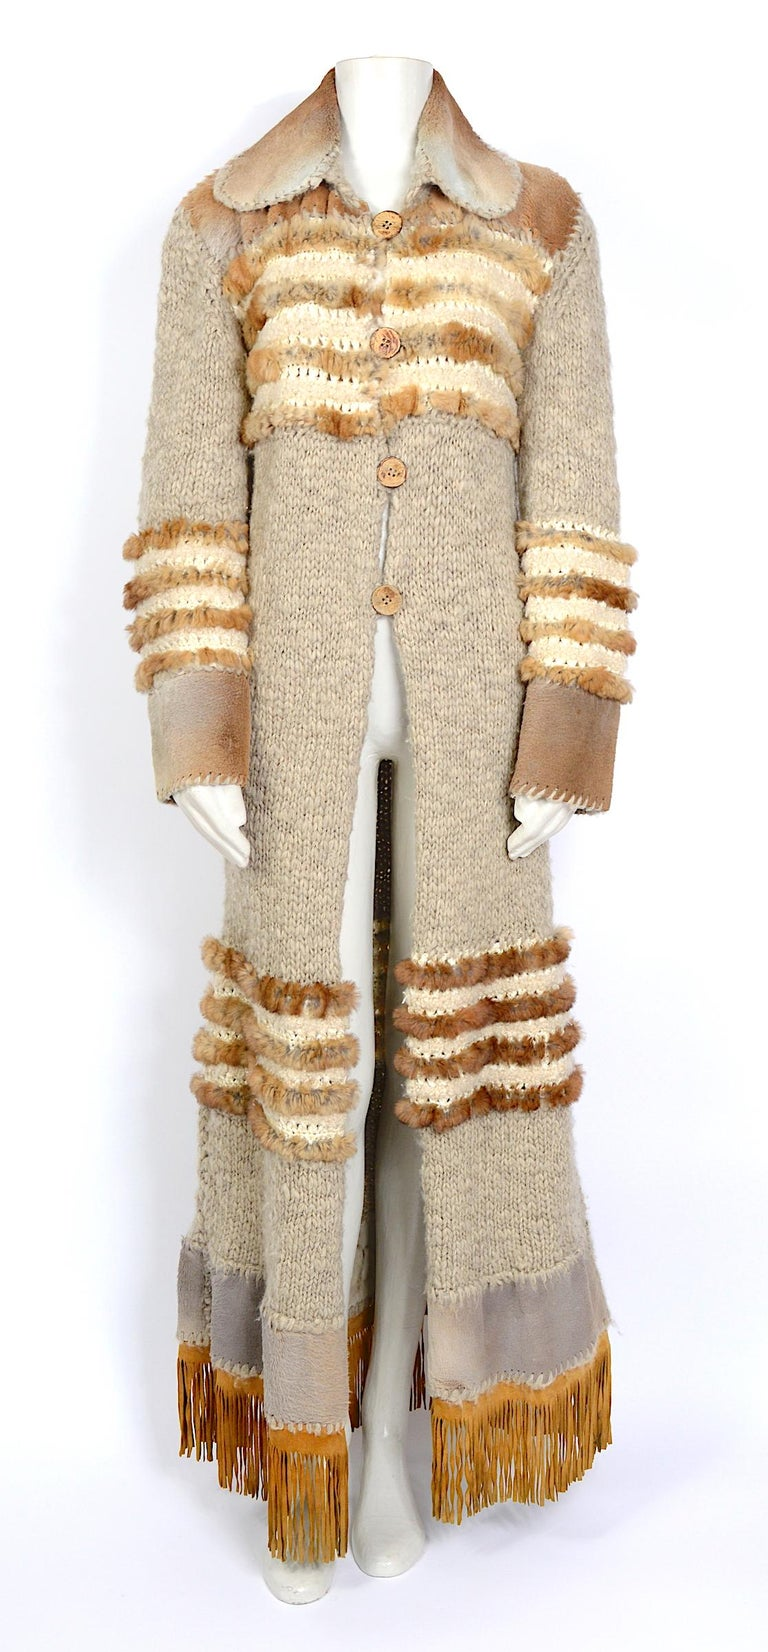 Amazing piece by John Galliano for Christian Dior fall 2000 Made in a knitted and crocheted YAK cashmere, rabbit shearling, and Kangaroo fur. This is a showroom model used for press only and has been stored since. In beautiful